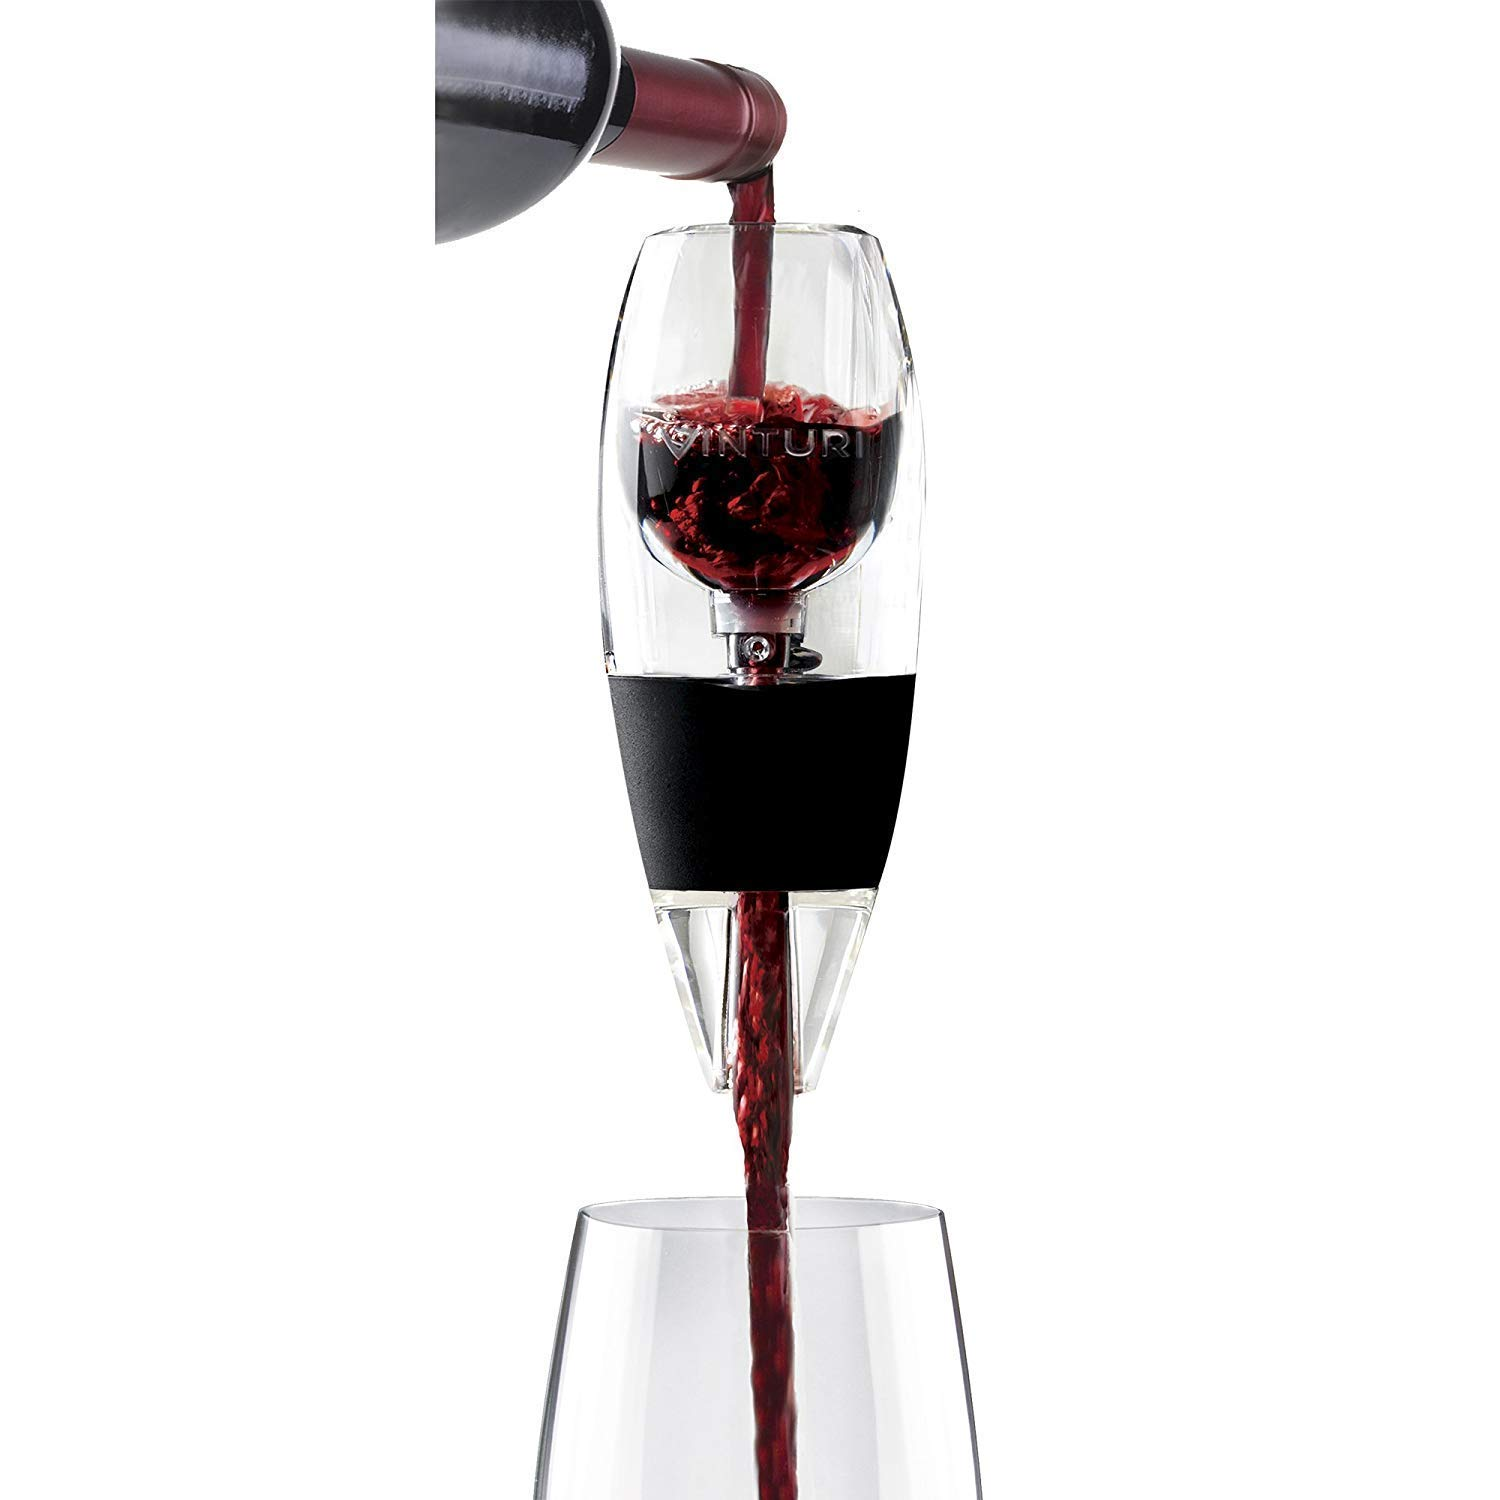 Vinturi V1010 Essential Red Wine Aerator Pourer and Decanter